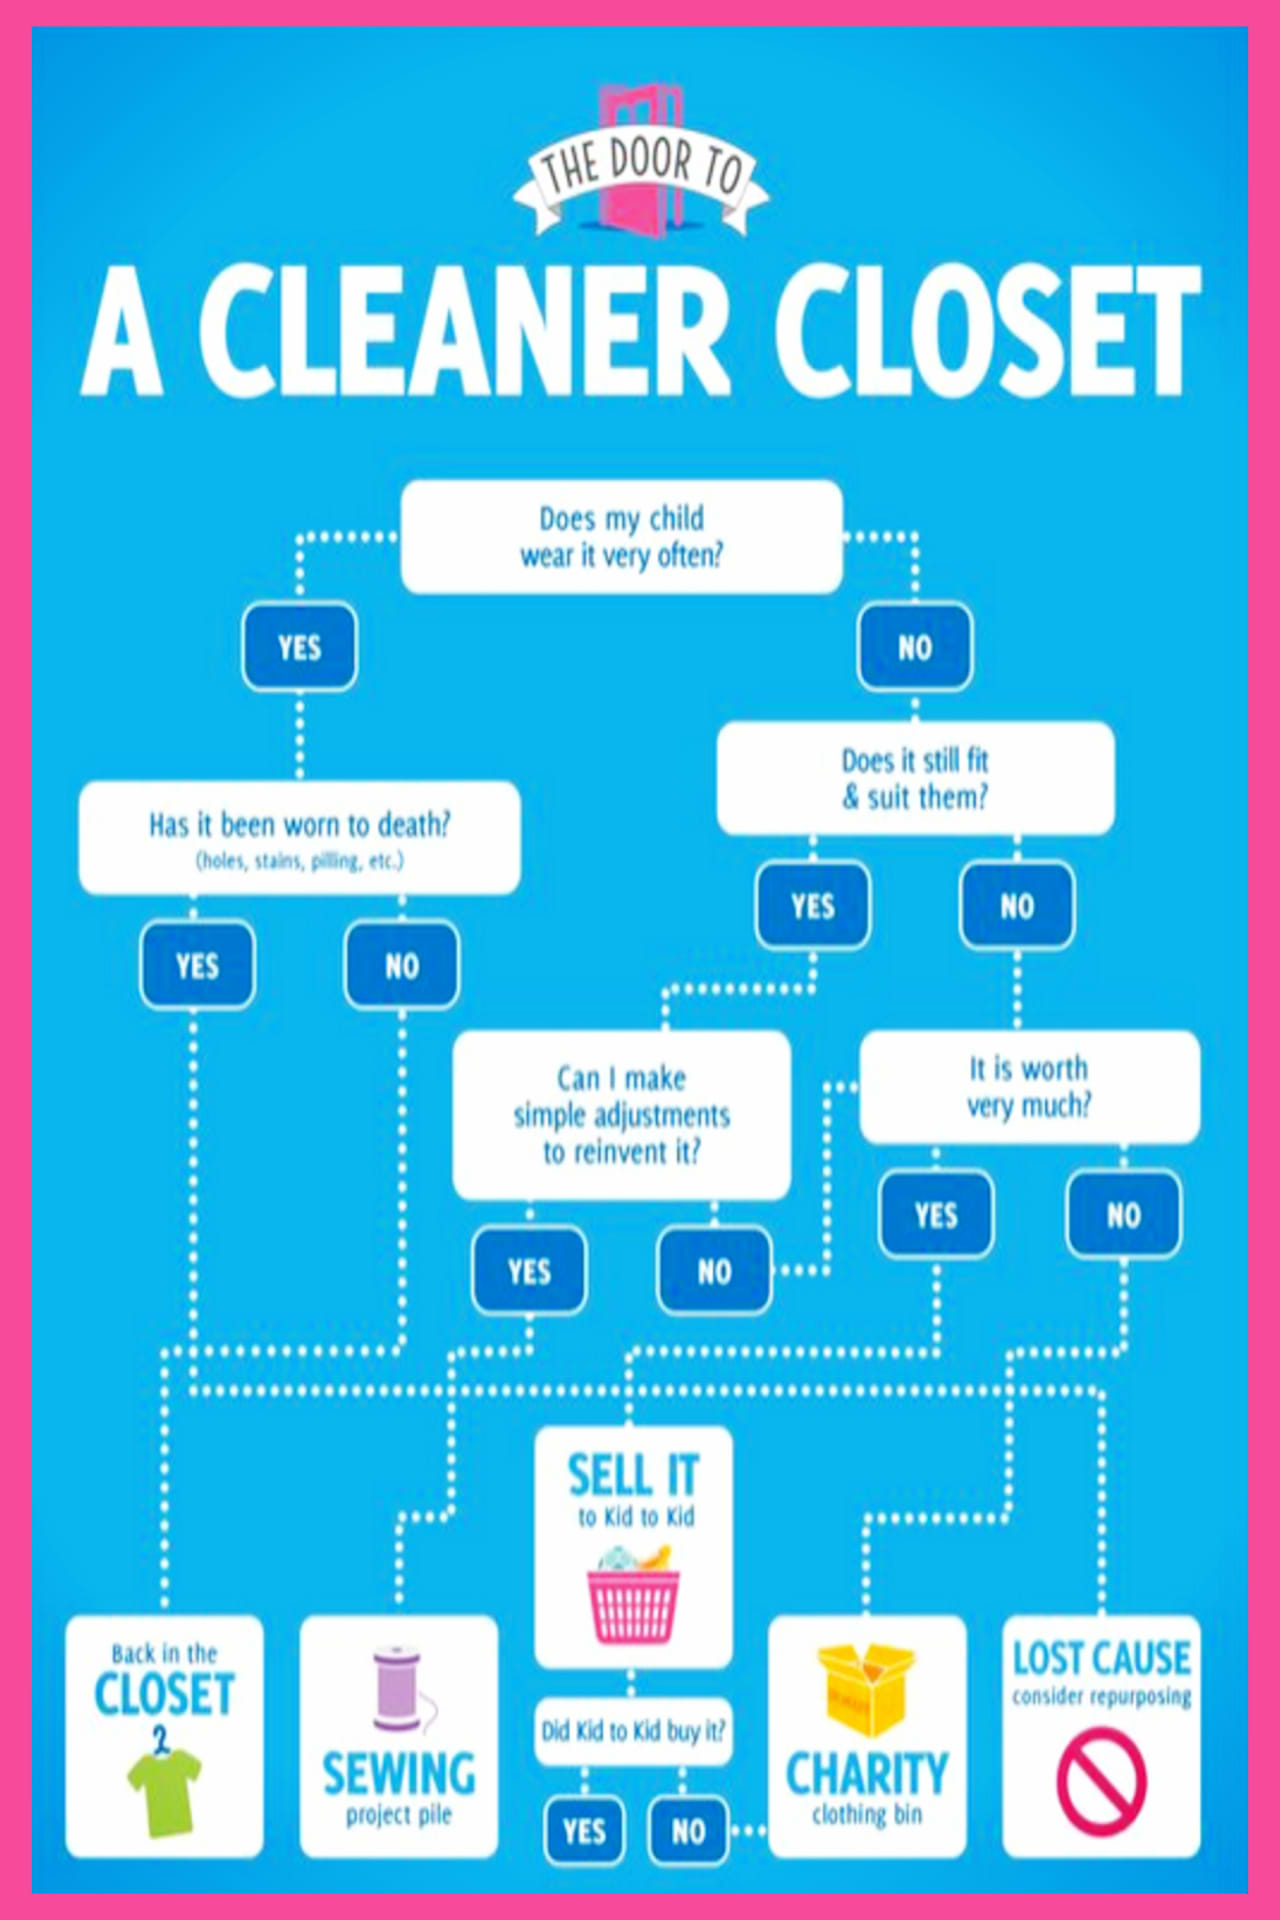 Closet organization on a budget -Clean out closet checklist to declutter and organize any closet on a budget - kids closet organization ideas and organizing tips